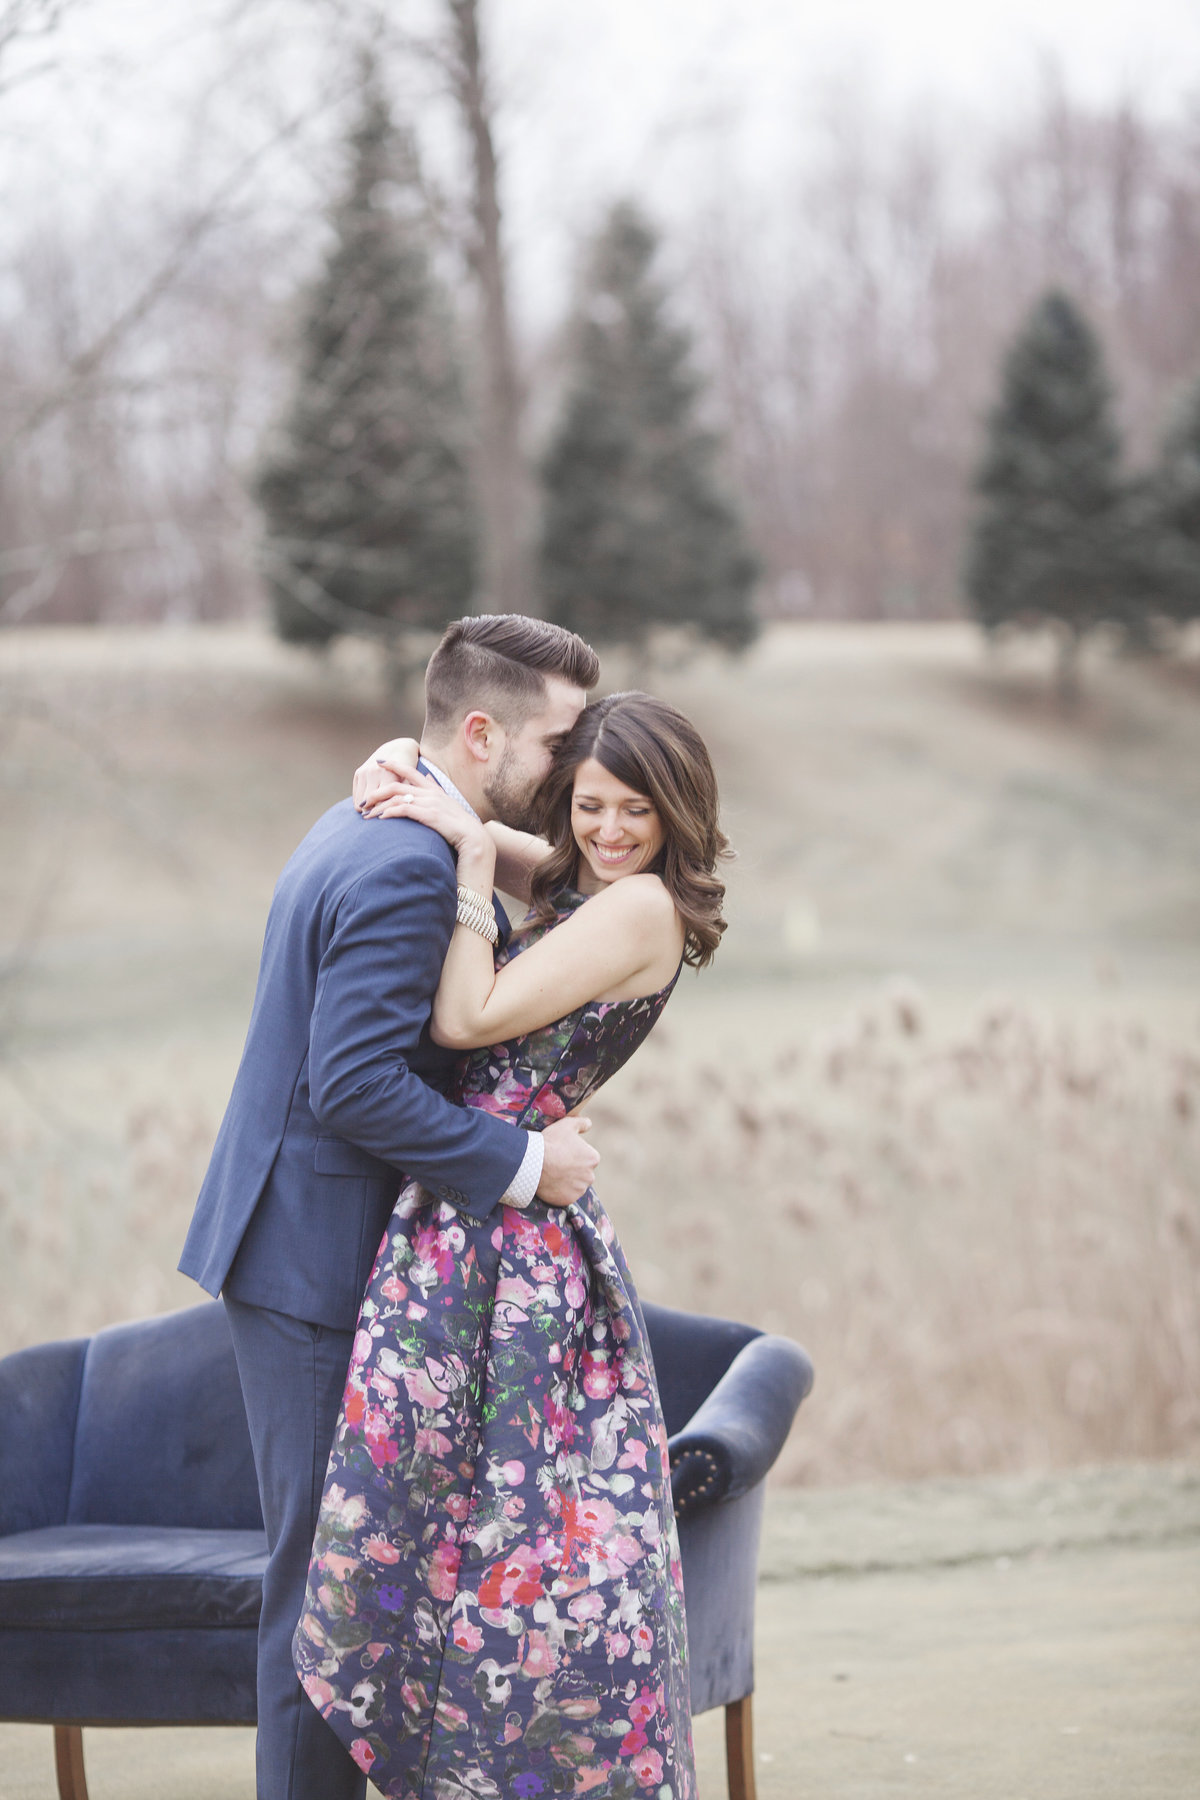 TIFFANY_WAYNE_photography_family_albany_saratoga_lifestyle_candid_love__engagement_pictures_0003